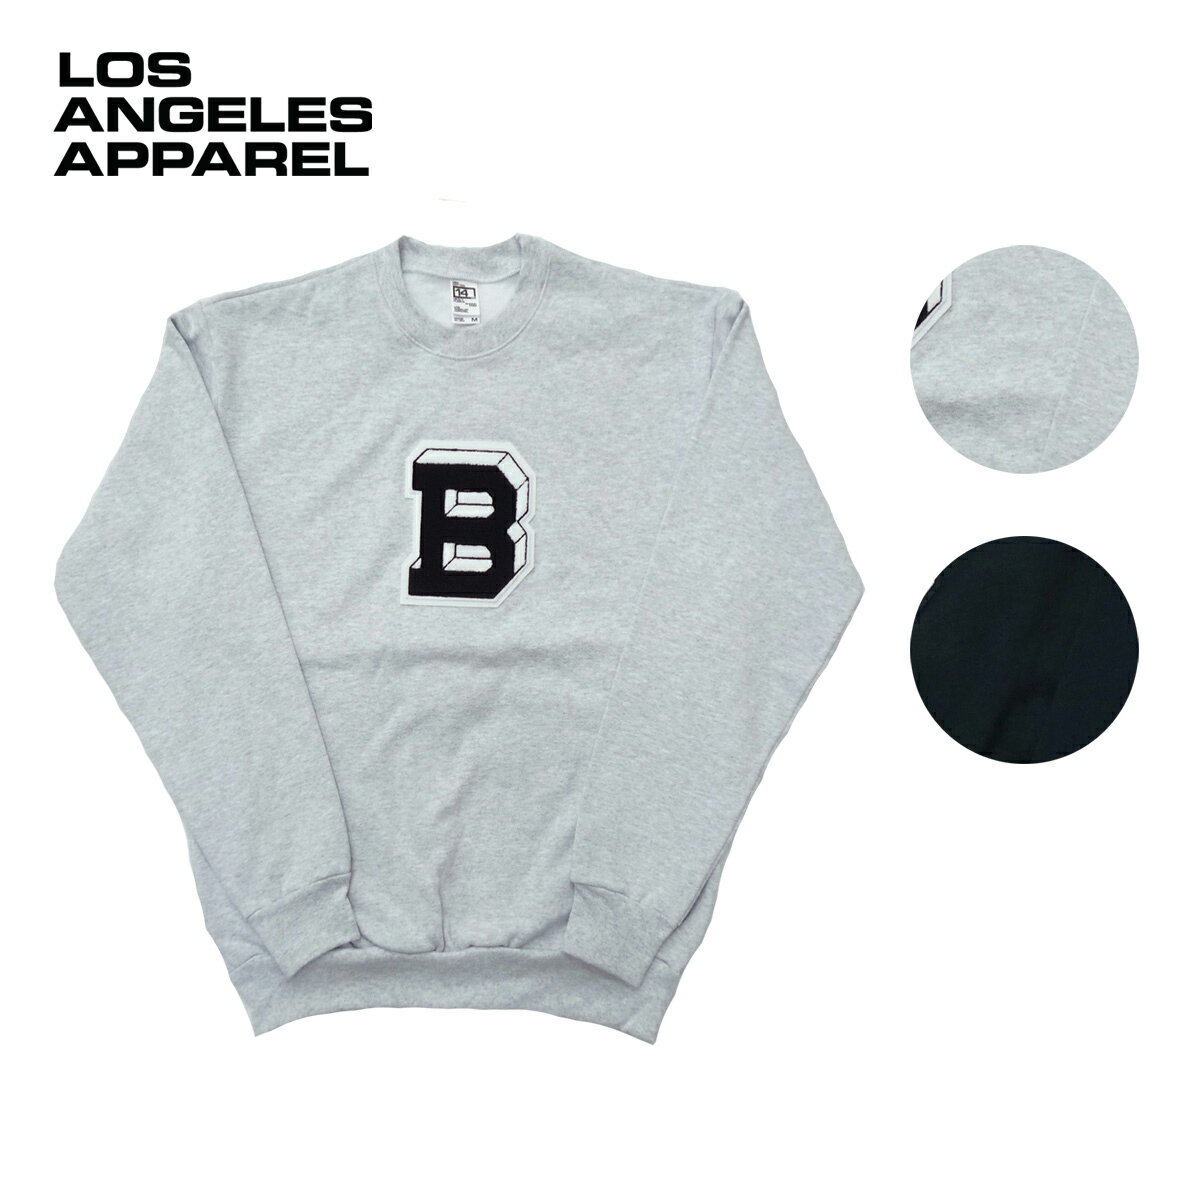 LOS ANGELES APPAREL ロサンゼルスアパレル TAILGATE別注 14oz WAPPEN SWEAT SHRTS